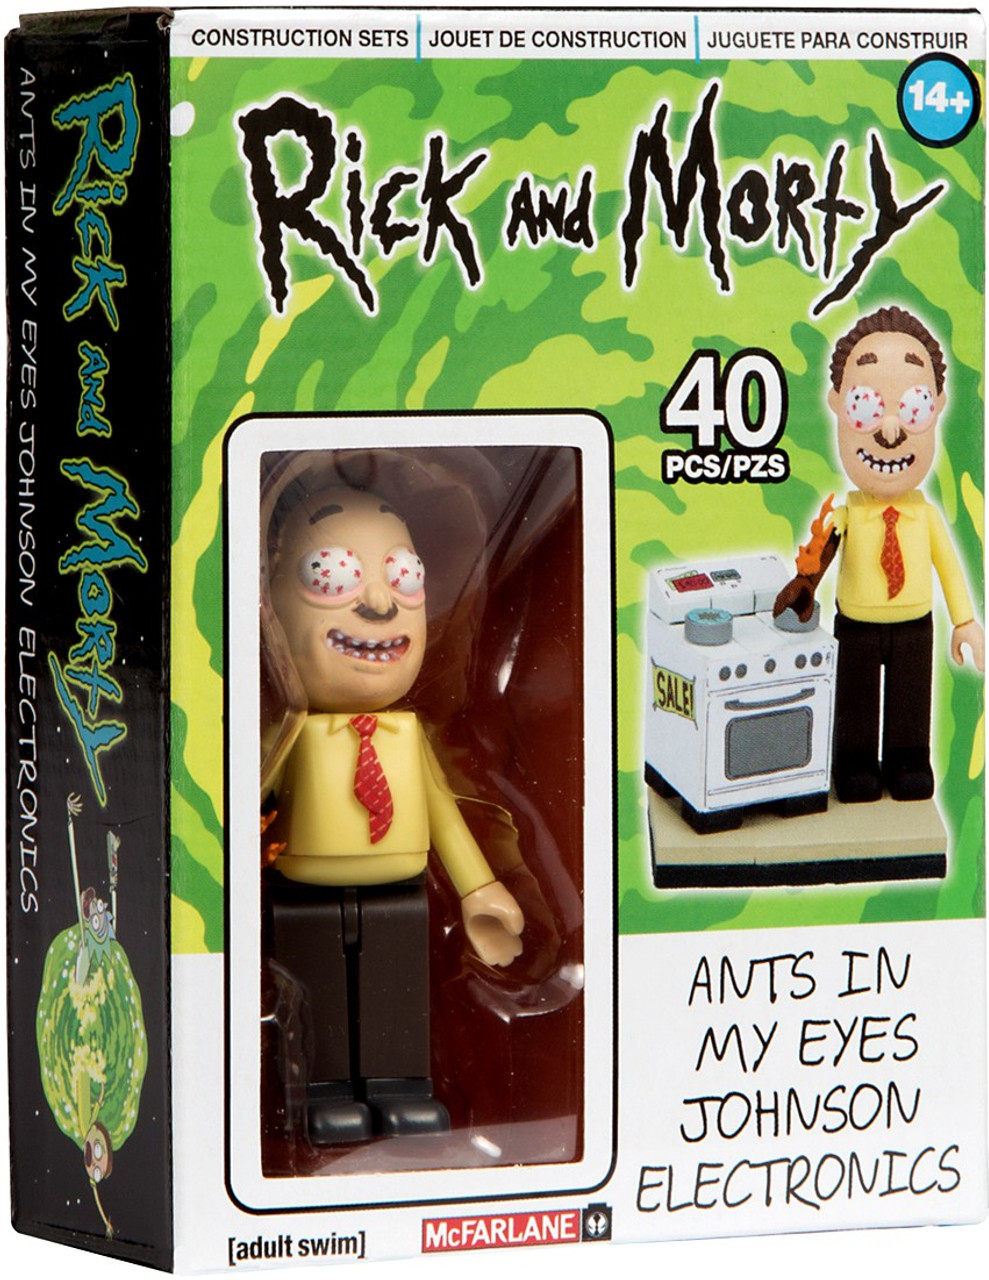 RICK AND MORTY Ants In My Eyes Johnson Electronics Construction Set 40 PCS